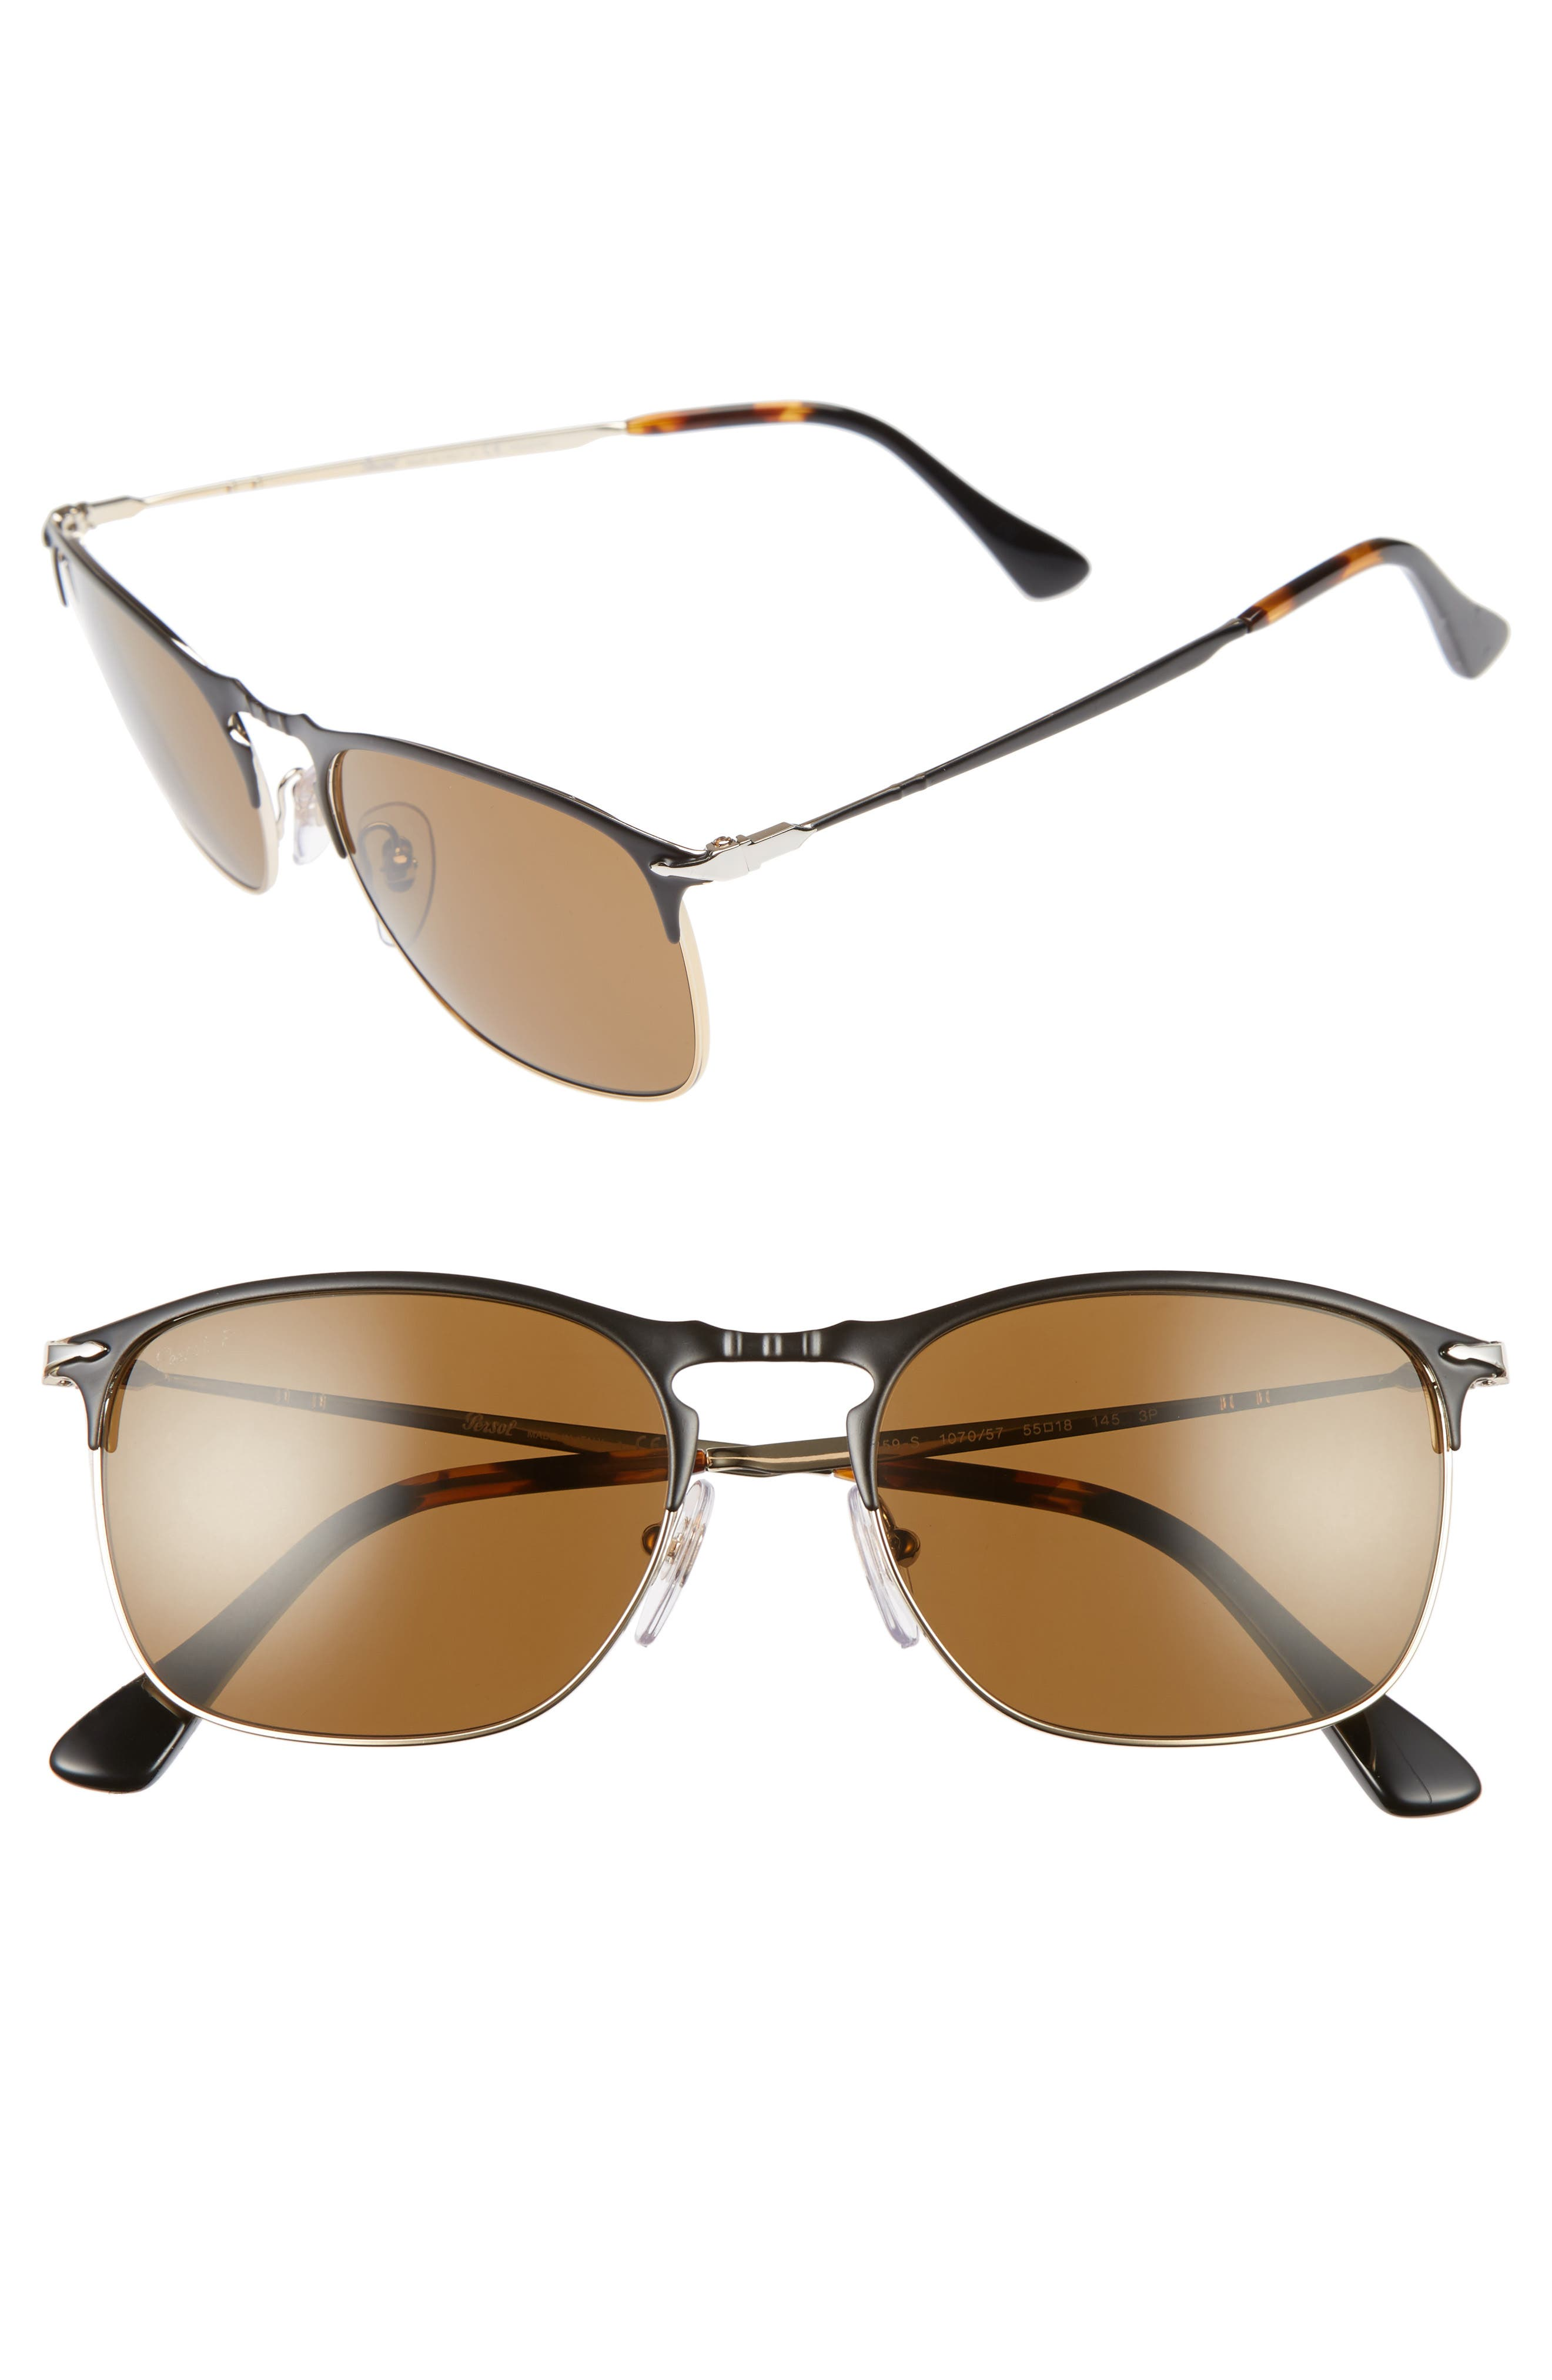 Alternate Image 1 Selected - Persol Evolution 55mm Polarized Aviator Sunglasses